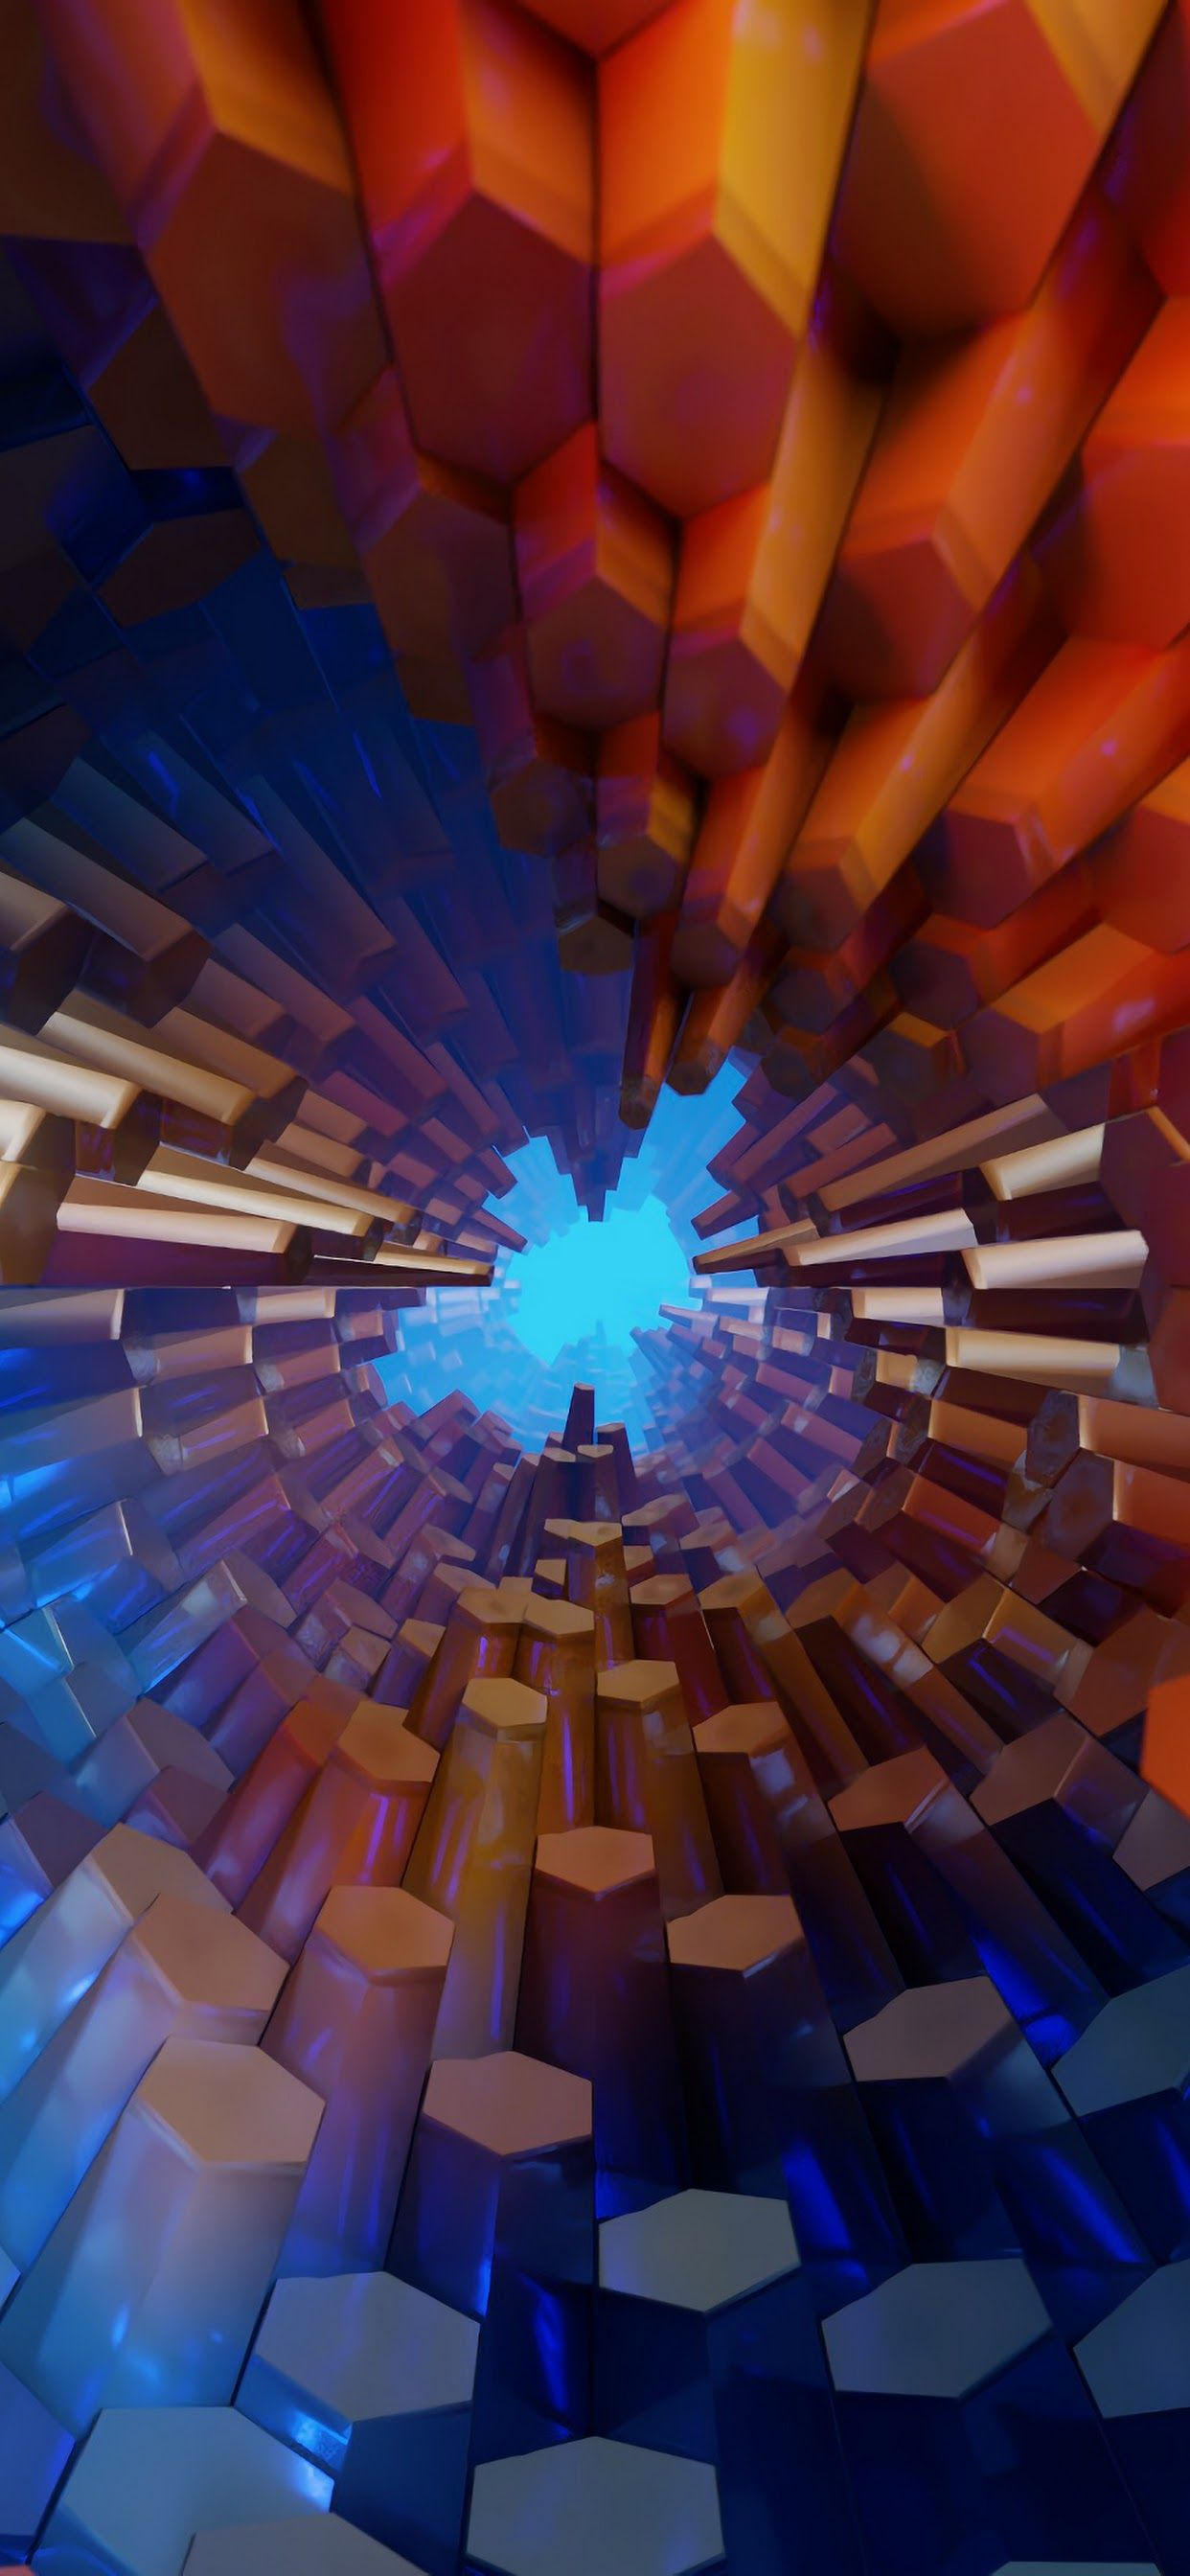 3D 4k Android Phone Wallpapers - Wallpaper Cave